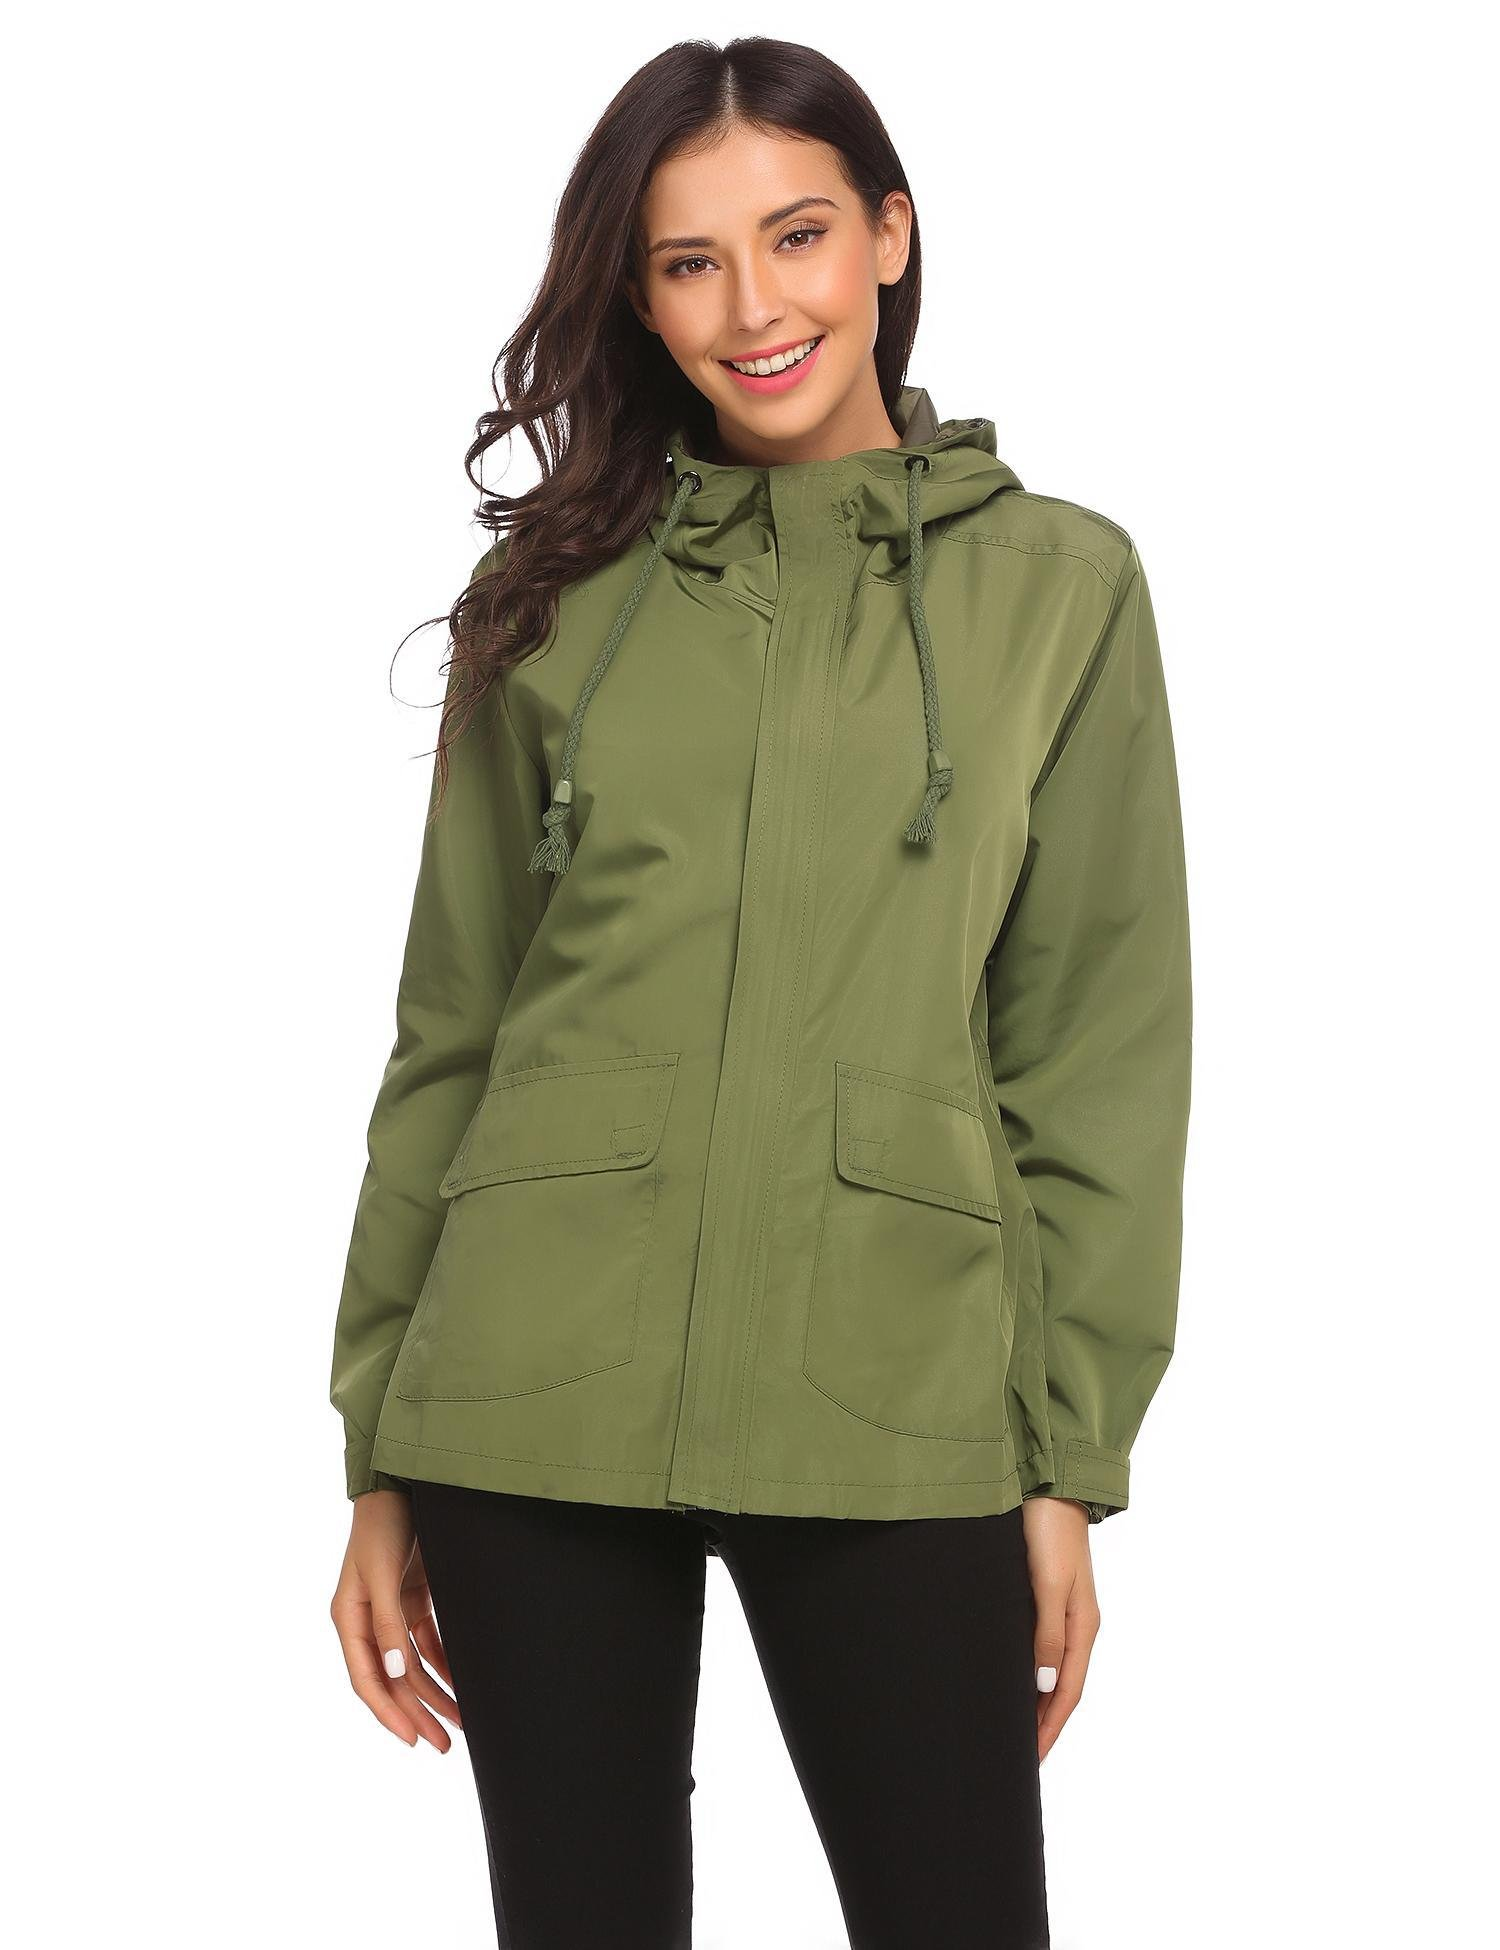 Vansop Casual Solid Top Military Wind Shirt Jacket Trenchcoat(Army Green)